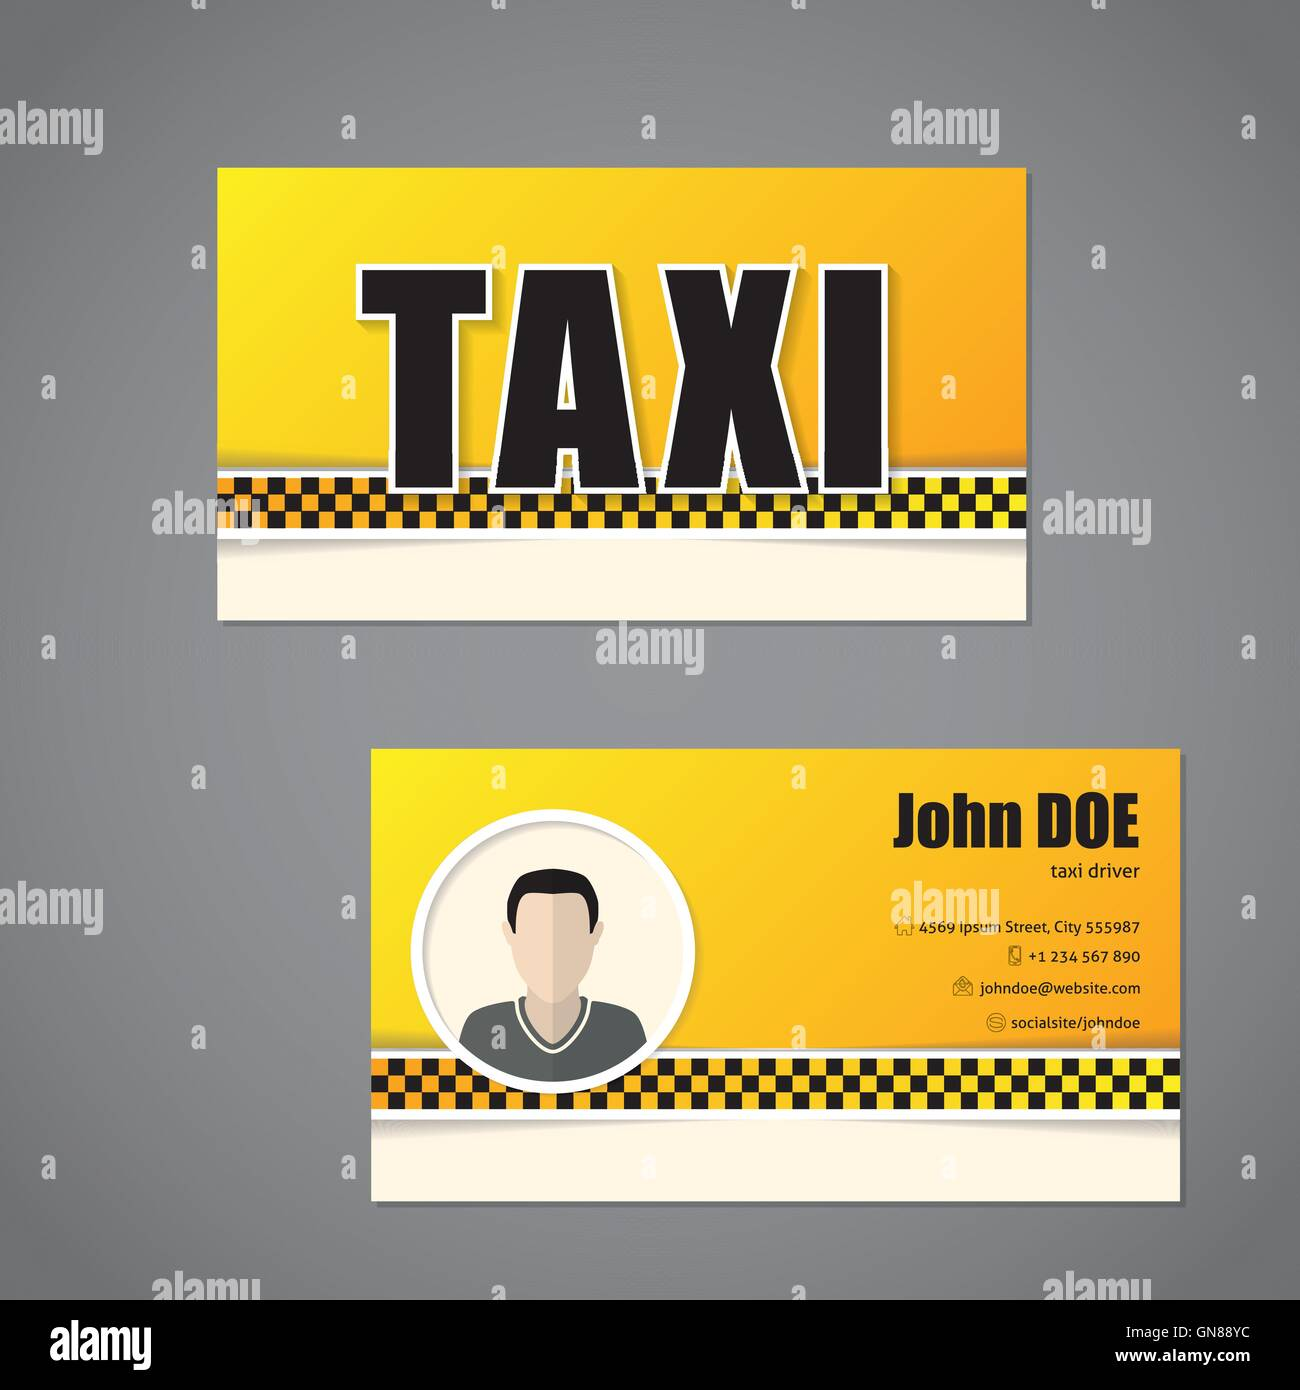 Taxi business card template with driver photo stock vector art taxi business card template with driver photo colourmoves